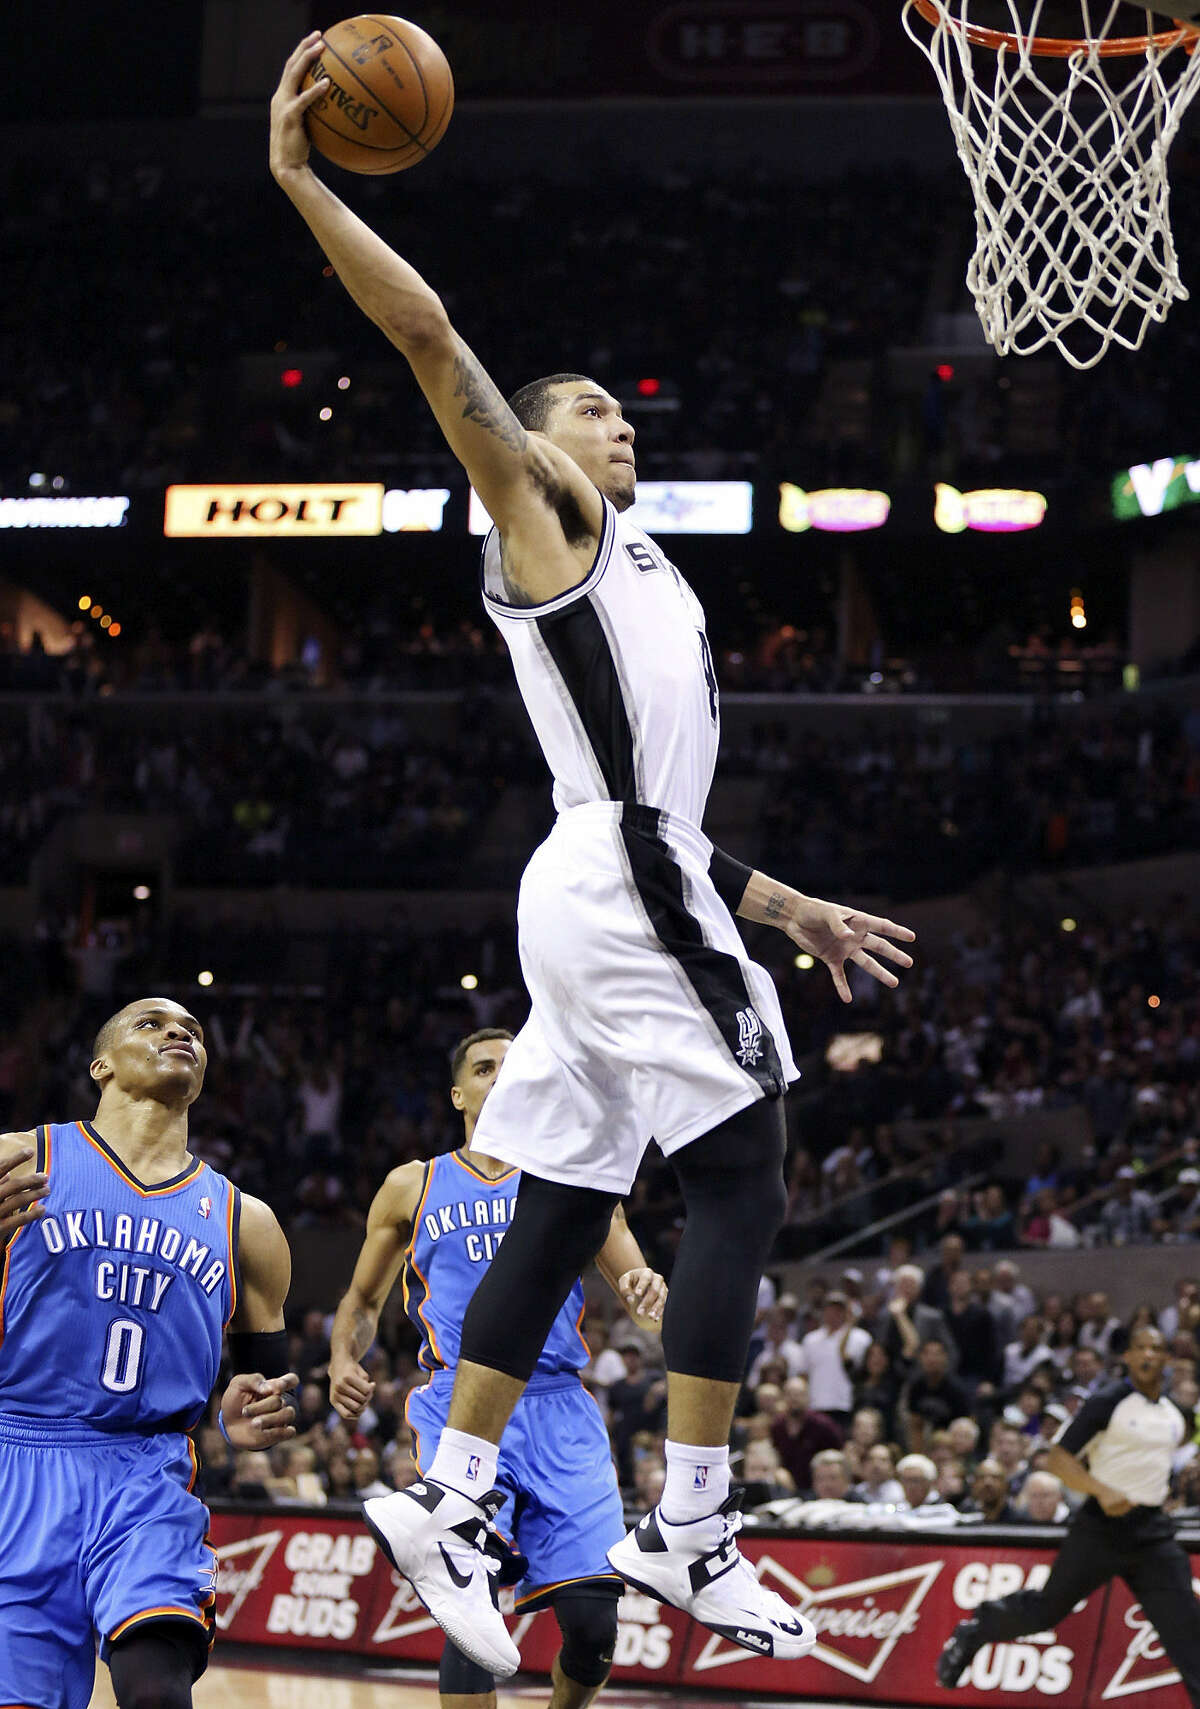 Spurs guard Danny Green, who had 16 points, leaves Thunder guard Russell Westbrook (0) behind as he goes up for a dunk.